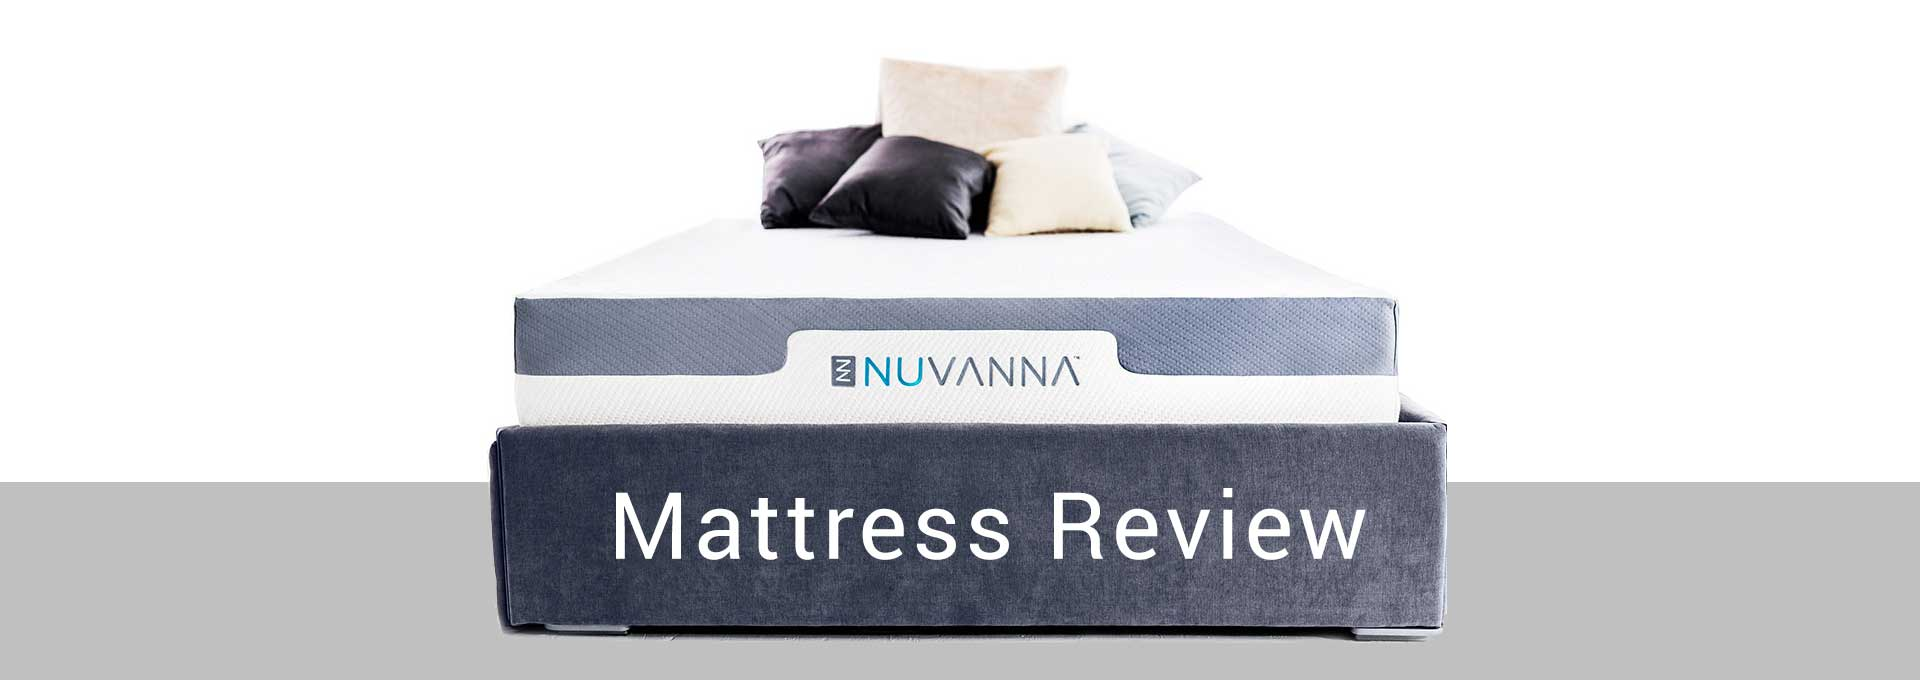 Discover a Nu way to sleep in our Nuvanna Mattress Review